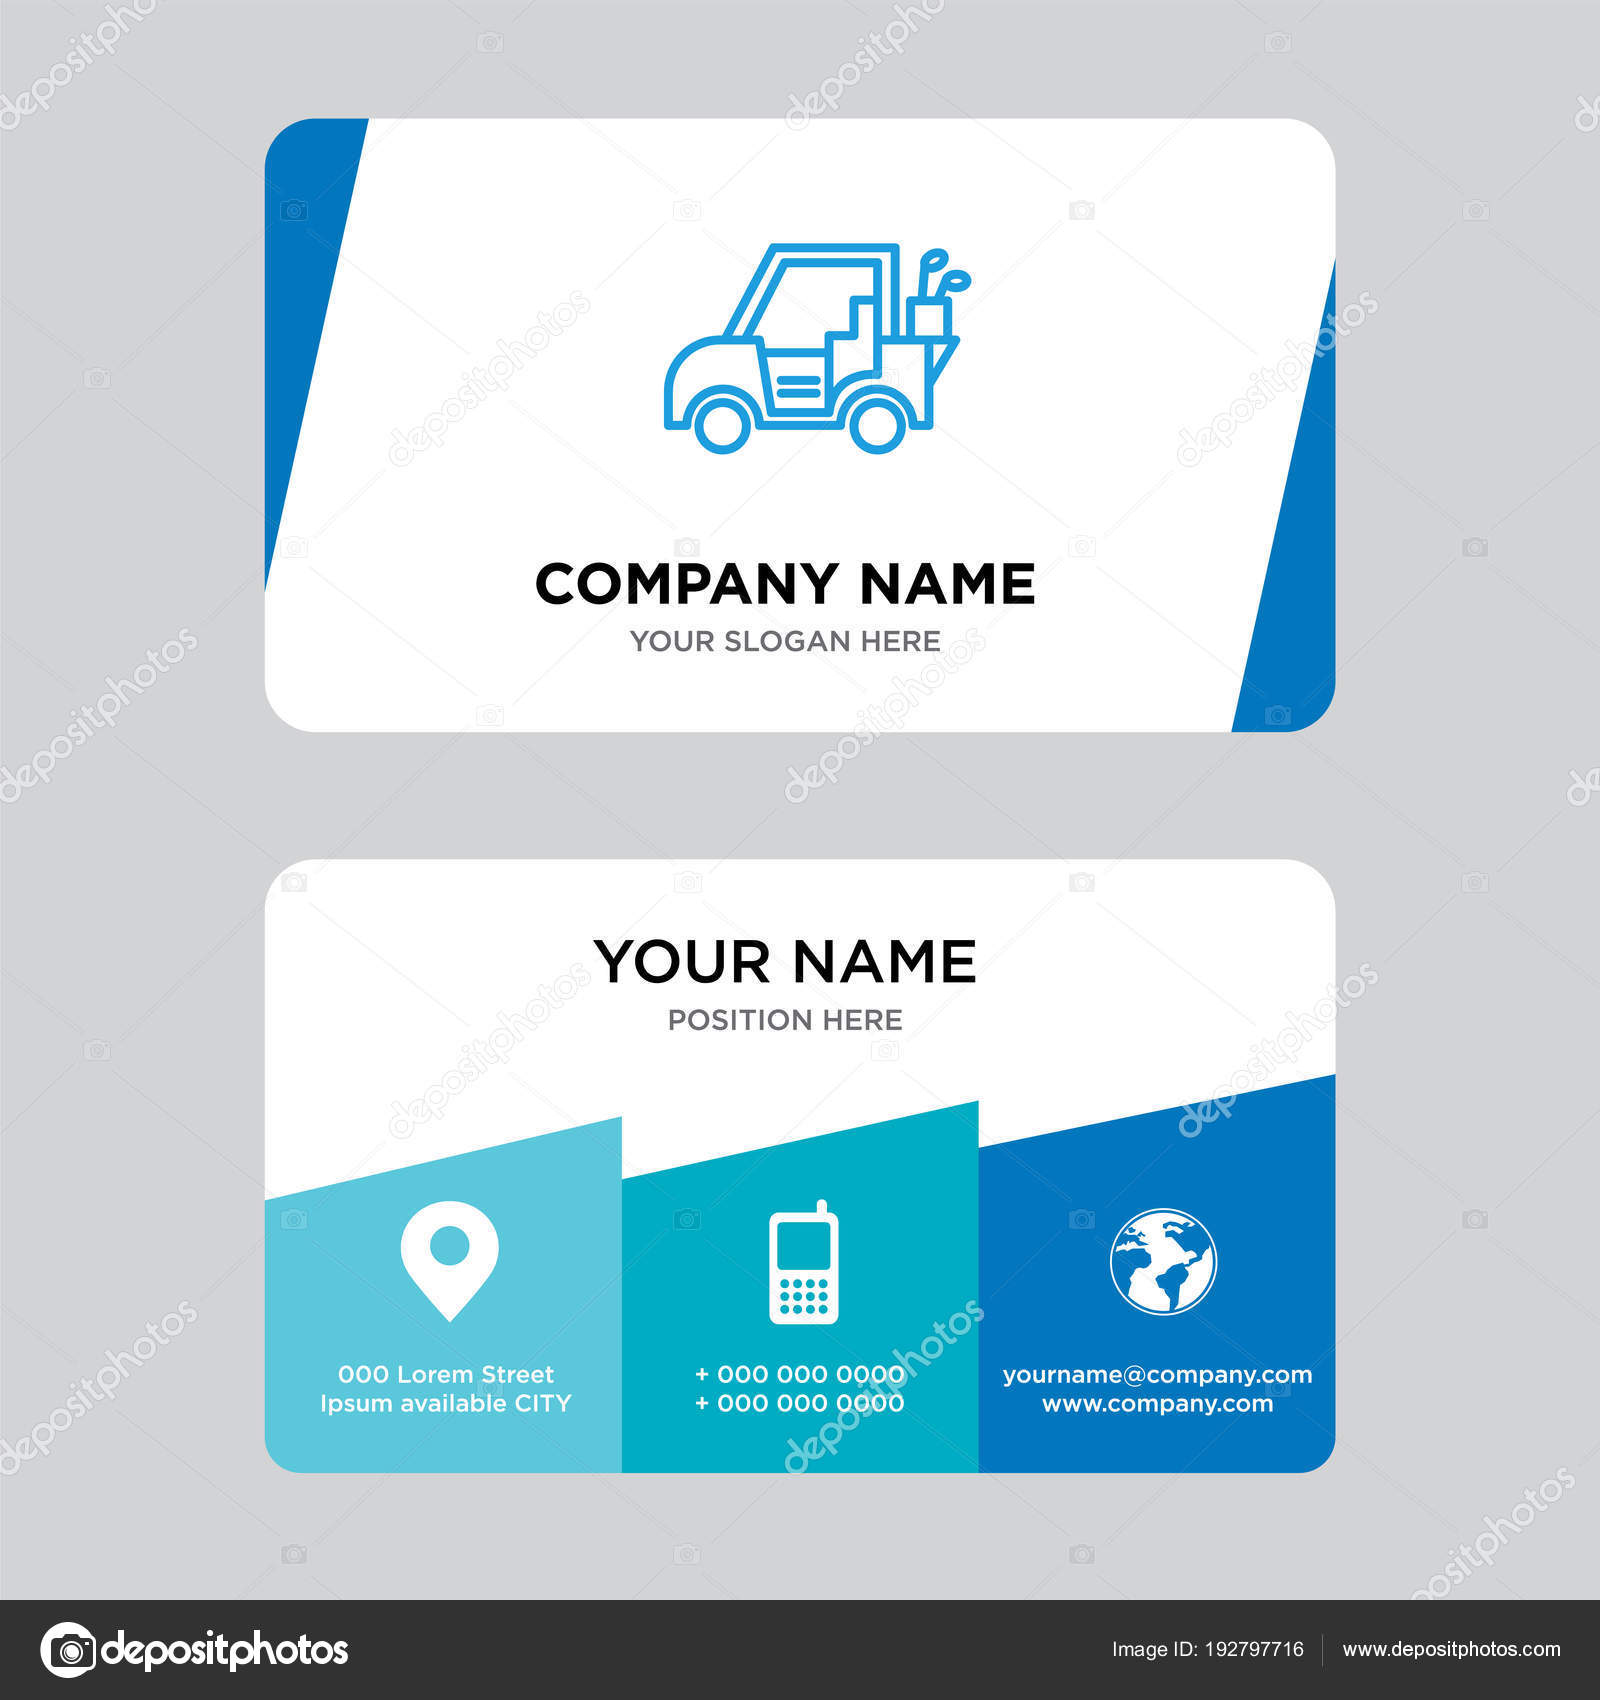 Golf car business card design template — Stock Vector ...